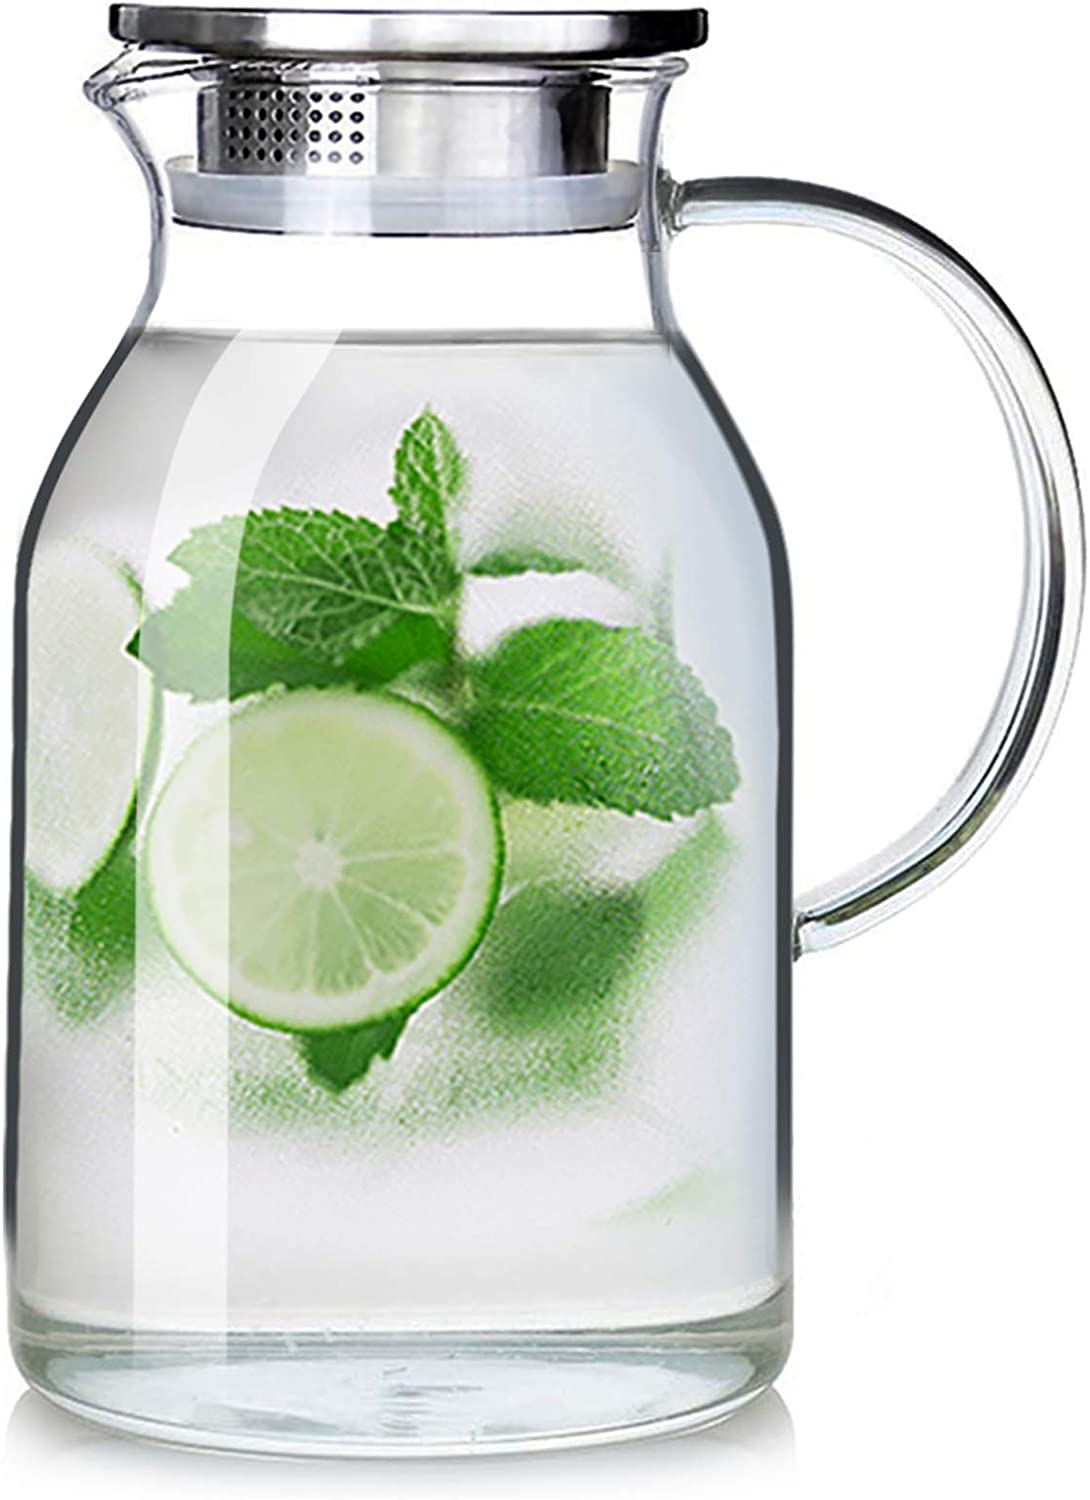 88OZ Glass Pitcher with Lid and Spout - High Heat Resistance Pitcher for Hot/Cold Water & Iced Tea (L 2.6L)